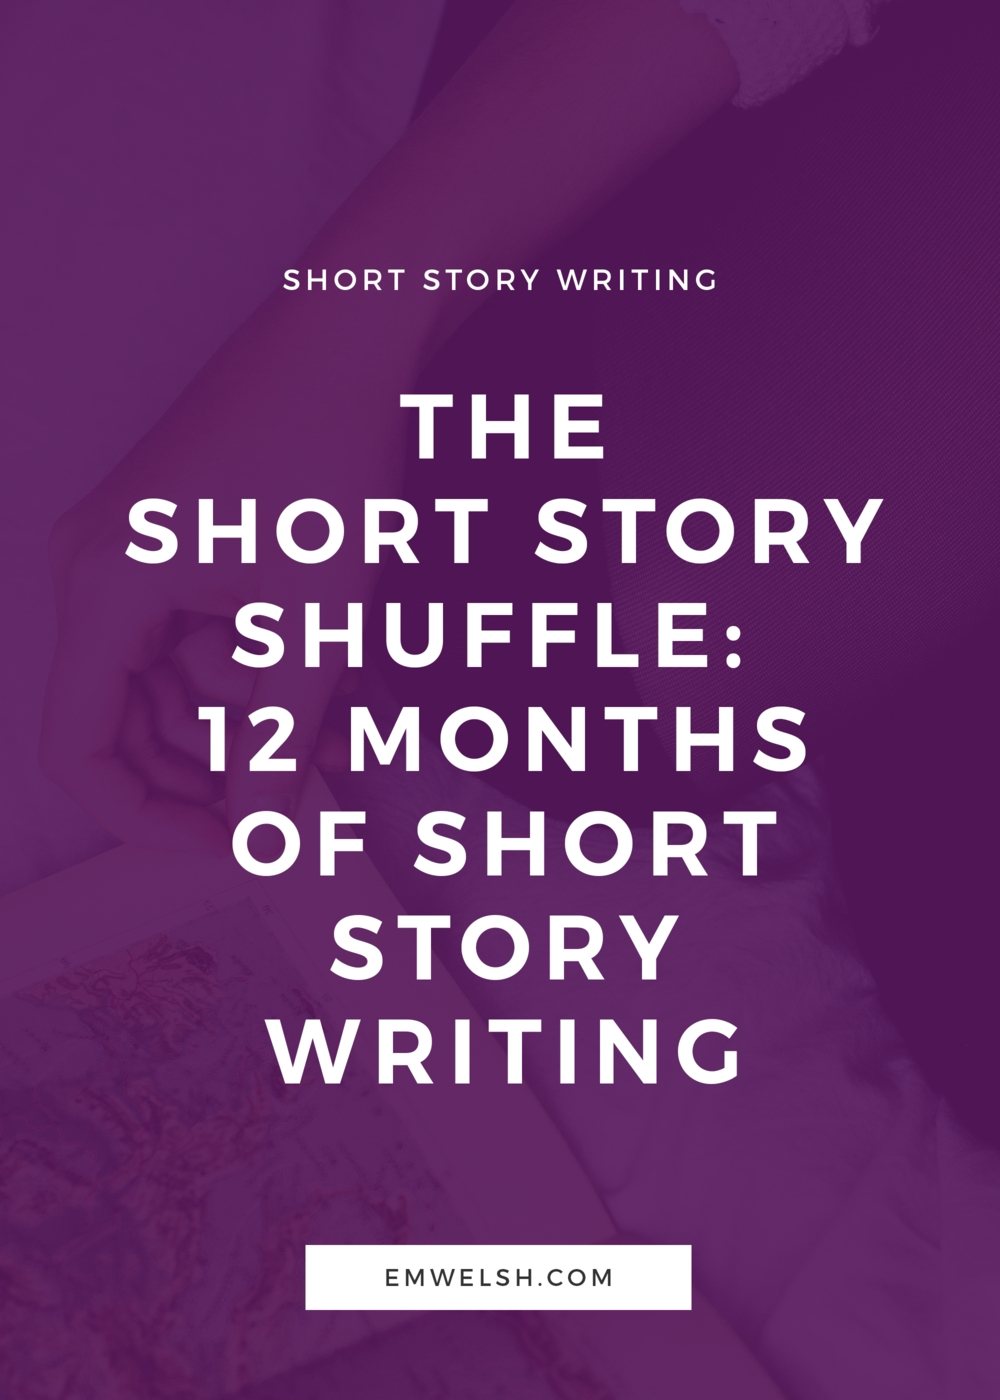 10 Stunning Ideas For Writing A Short Story the short story shuffle 12 months of short story writing short 2020